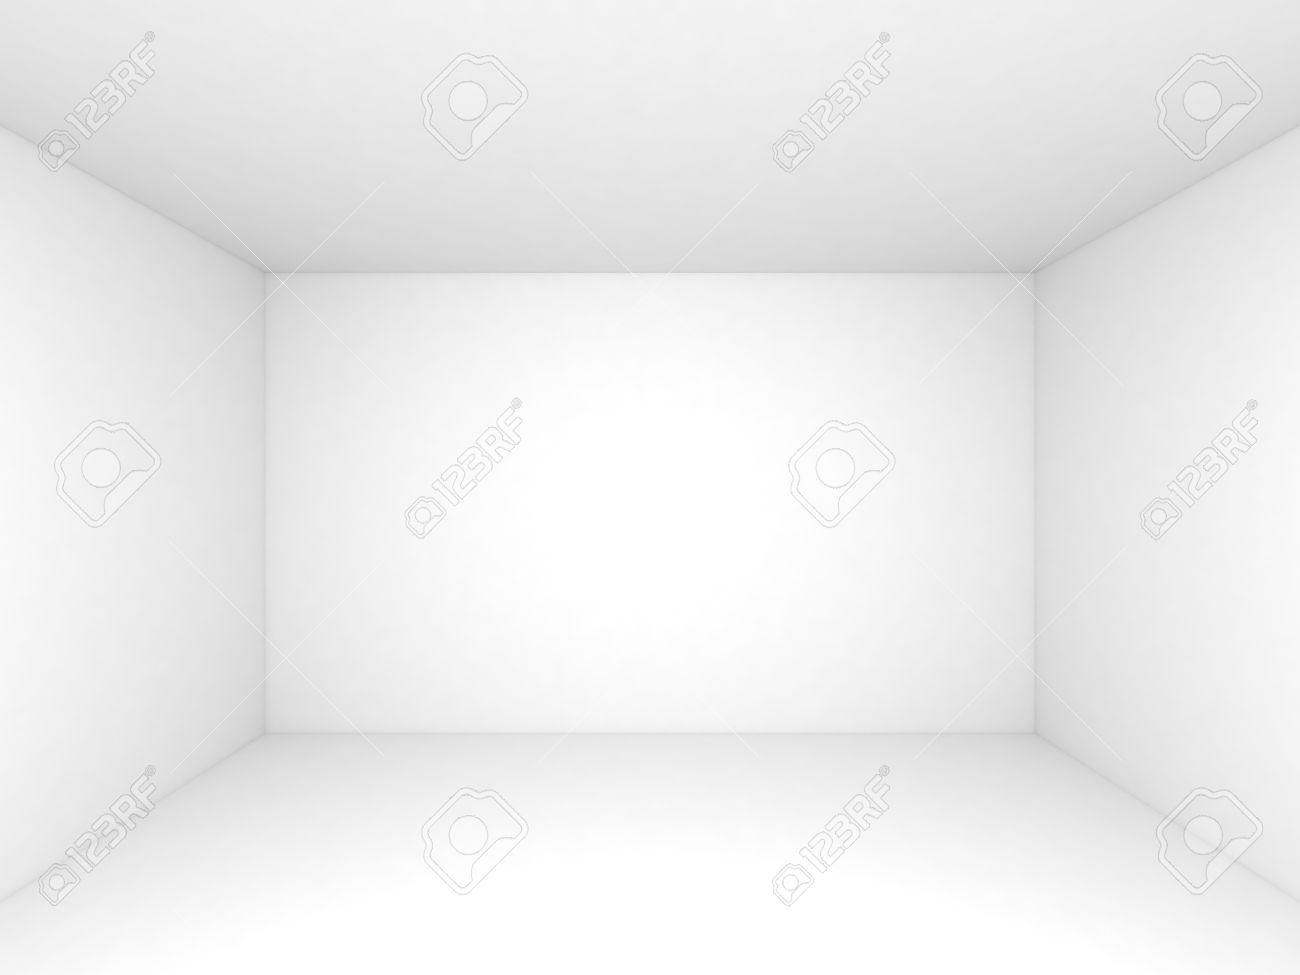 Empty White 3d Room Interior Background, Front View Stock Photo   32867465